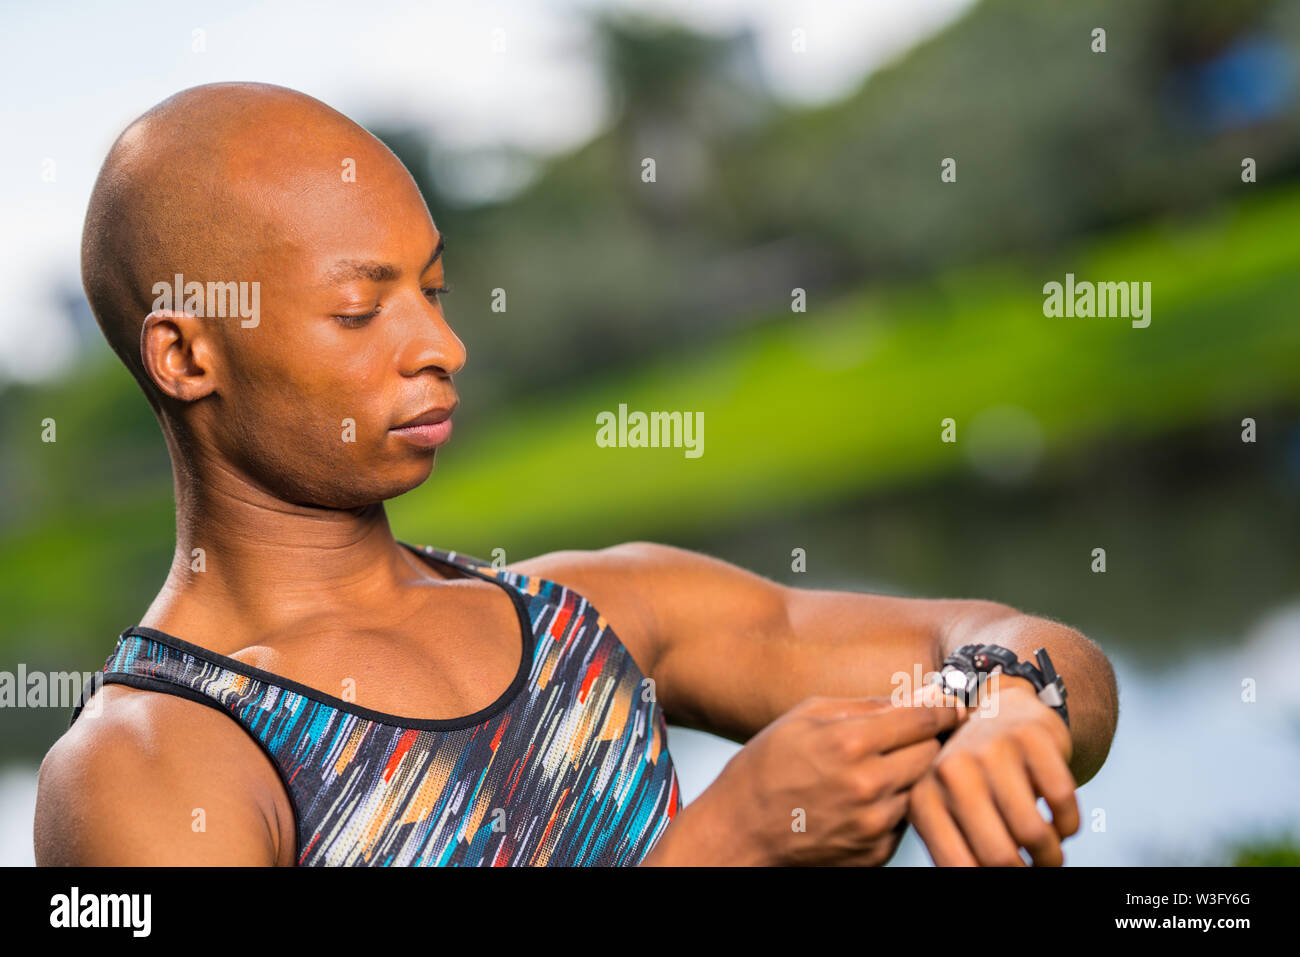 Photo of a fitness model setting his smart watch settings - Stock Image